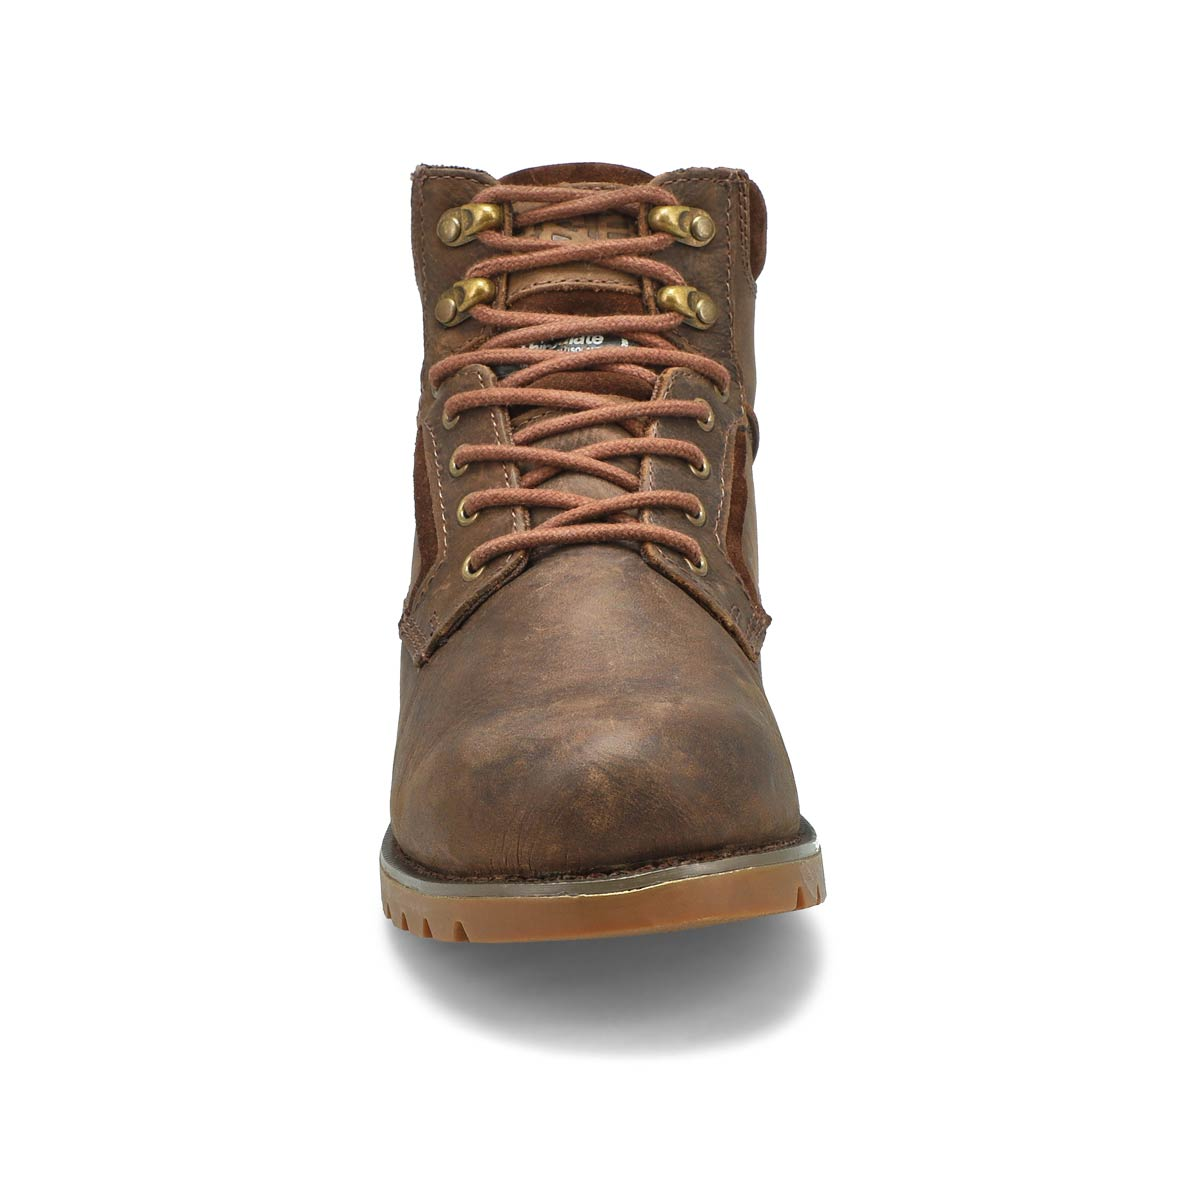 Mns Martin brn wtpf lace-up winter boot